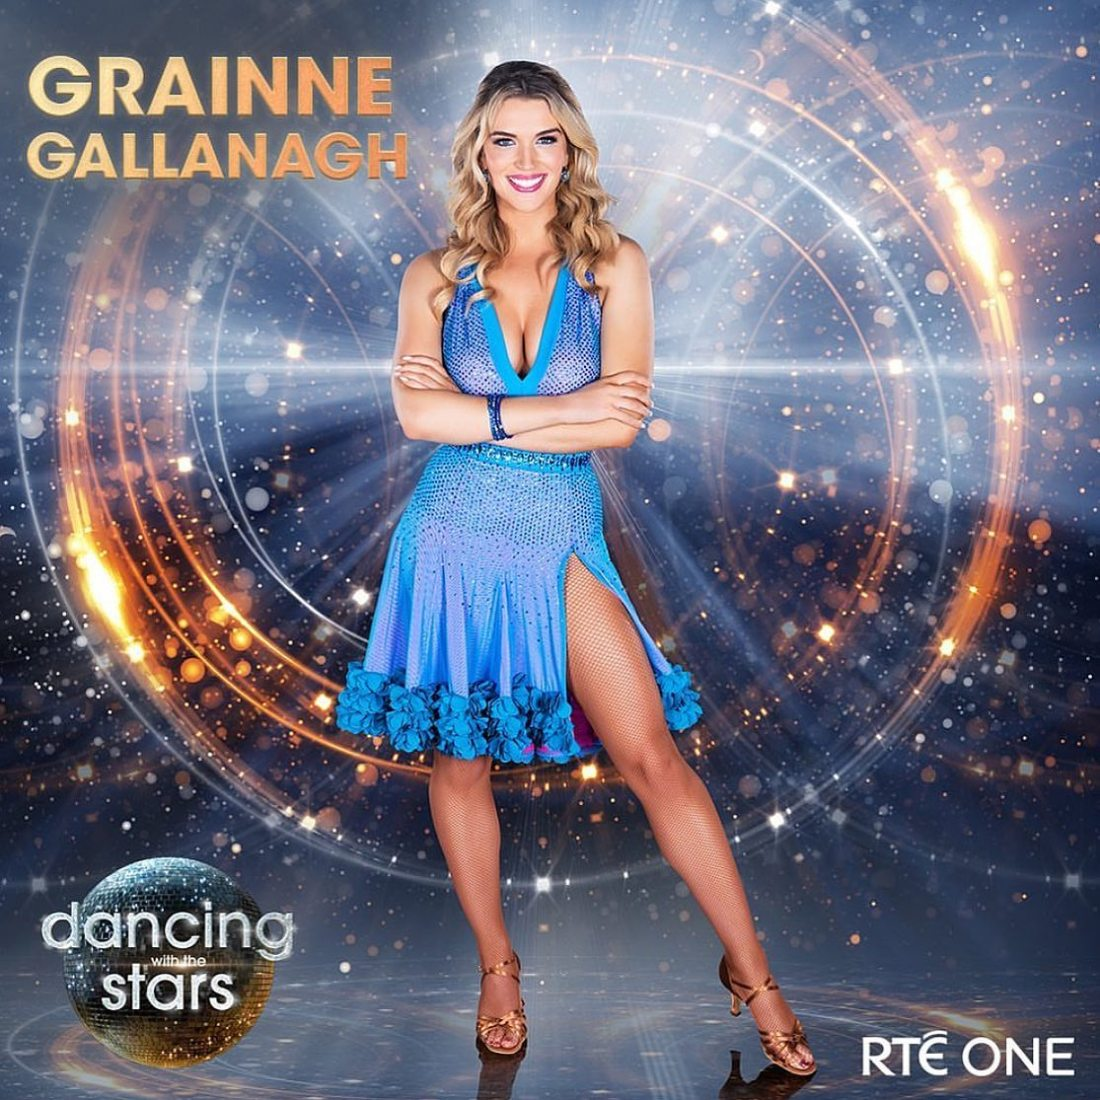 Miss Universe Ireland 2018 GRAINNE GALLANAGH is set to star in the new series of Dancing With The Stars Ireland.